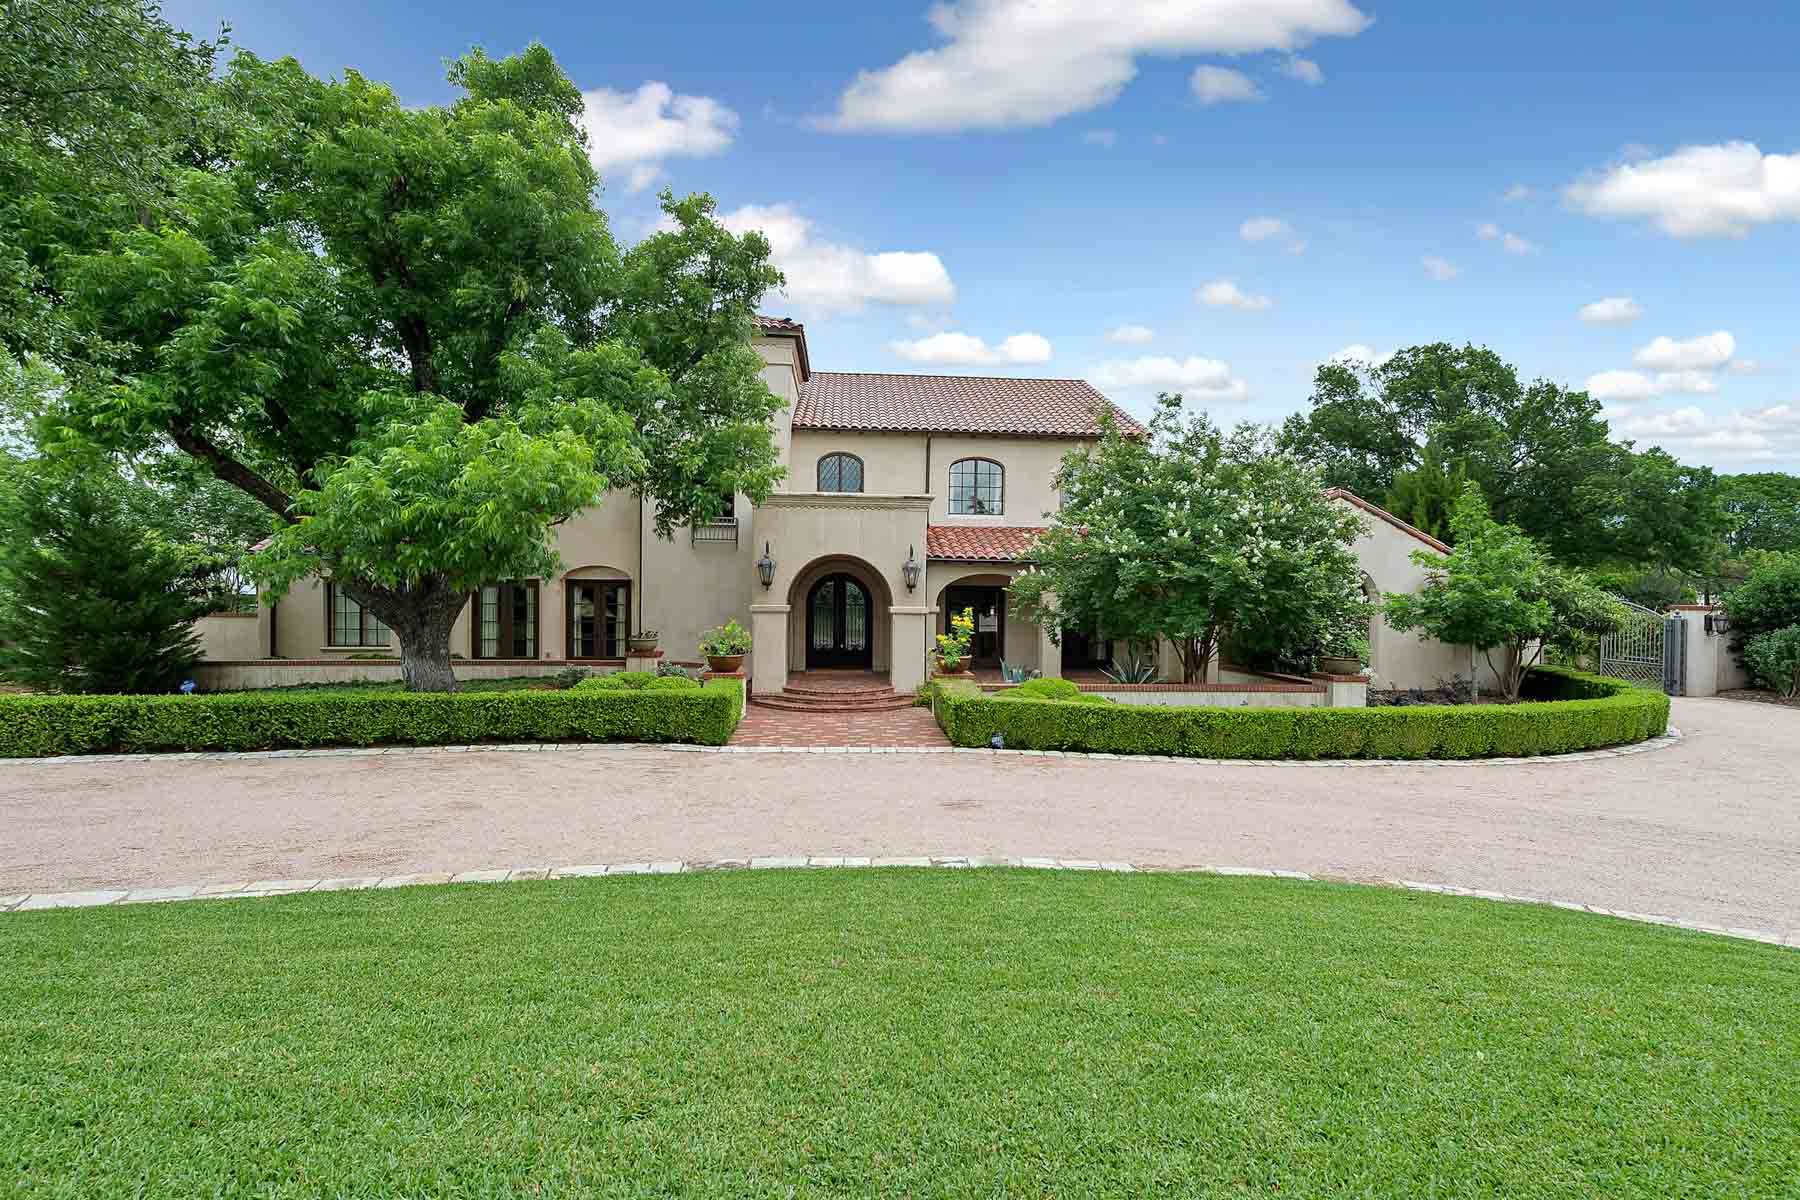 Single Family Home for Sale at Beautiful Spanish Inspired Fort Worth Home 2017 Four Oaks Fort Worth, Texas, 76107 United States